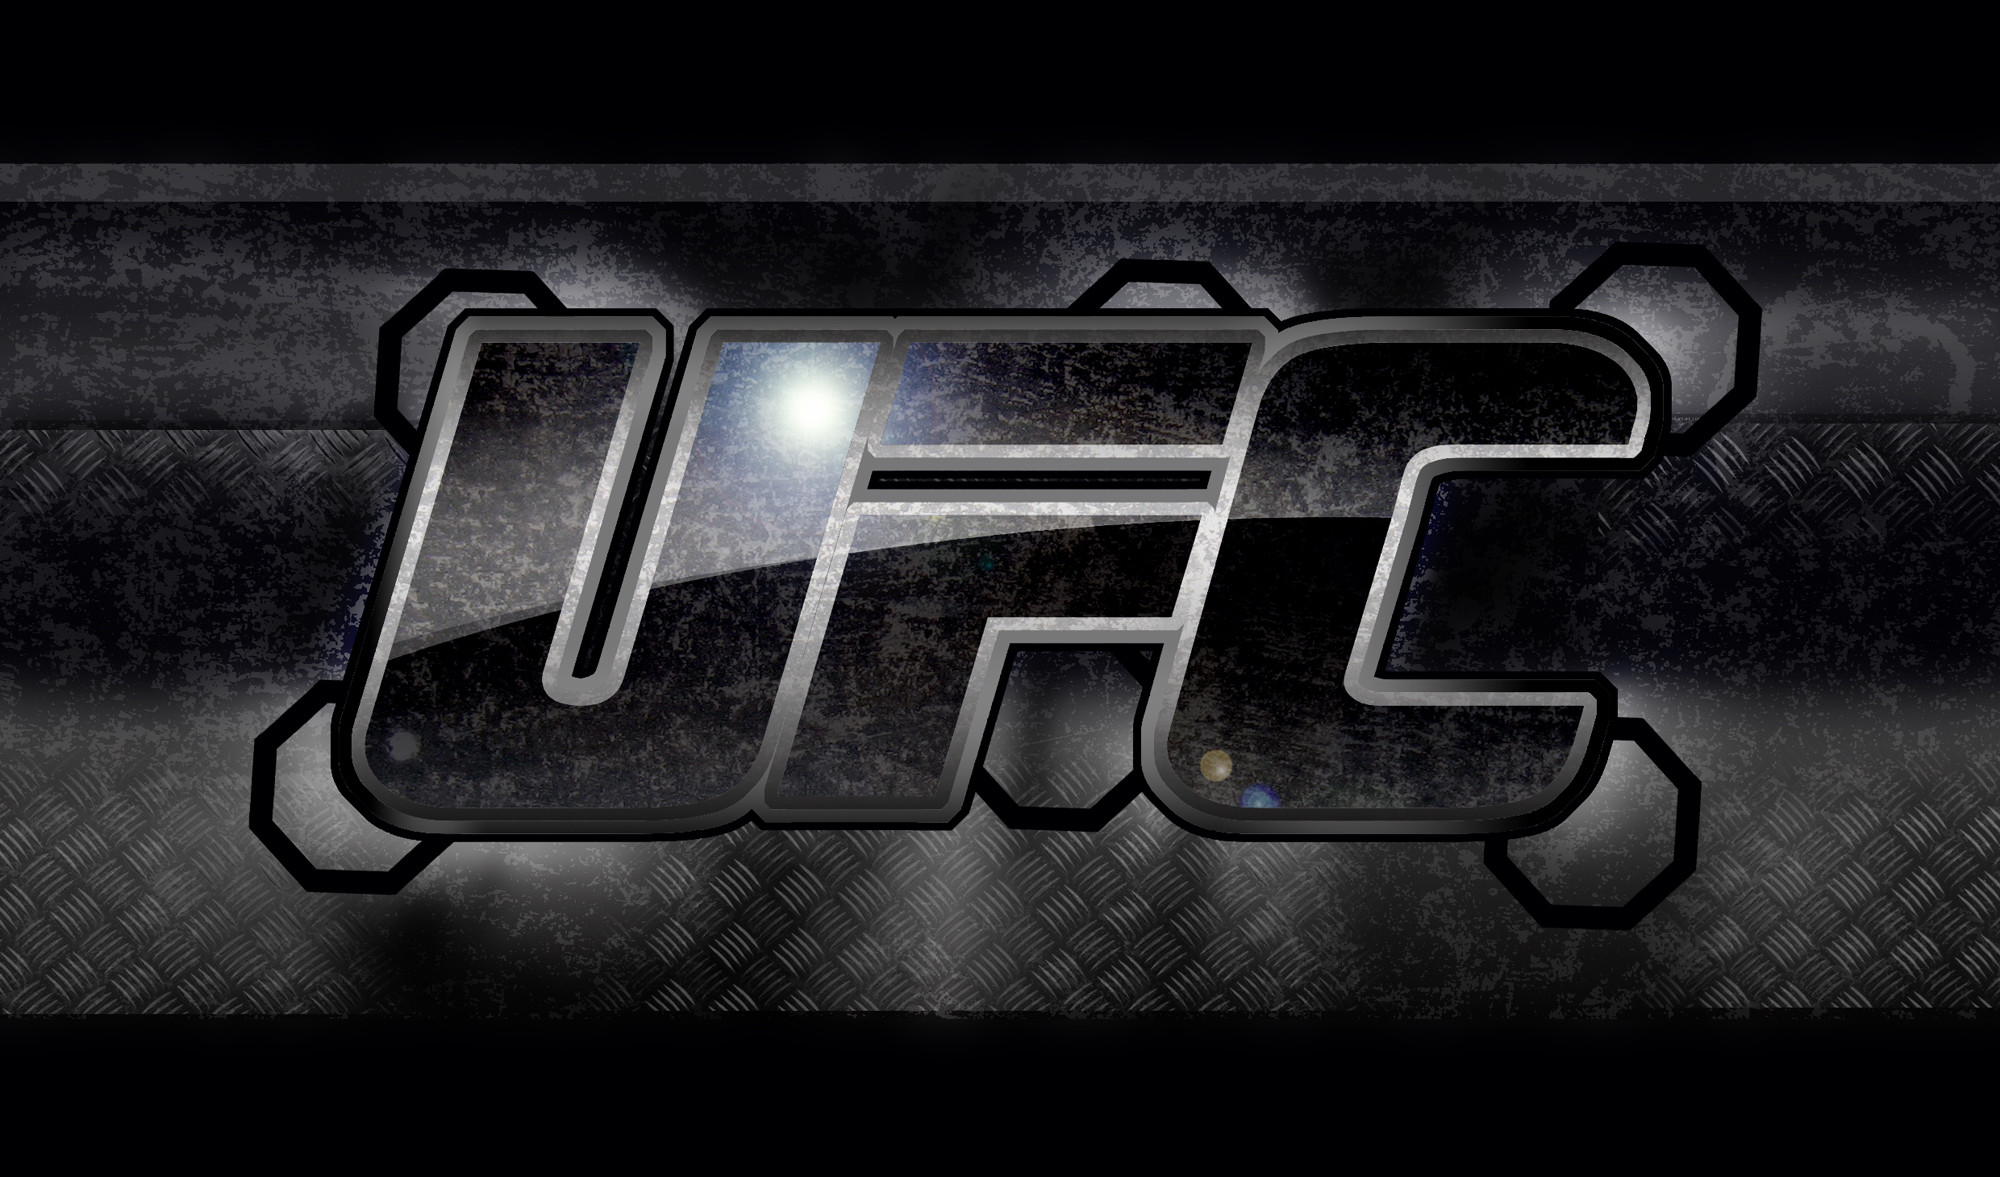 Ufc logo wallpaper 60 images 2000x1177 hd wallpaper background id253126 voltagebd Image collections